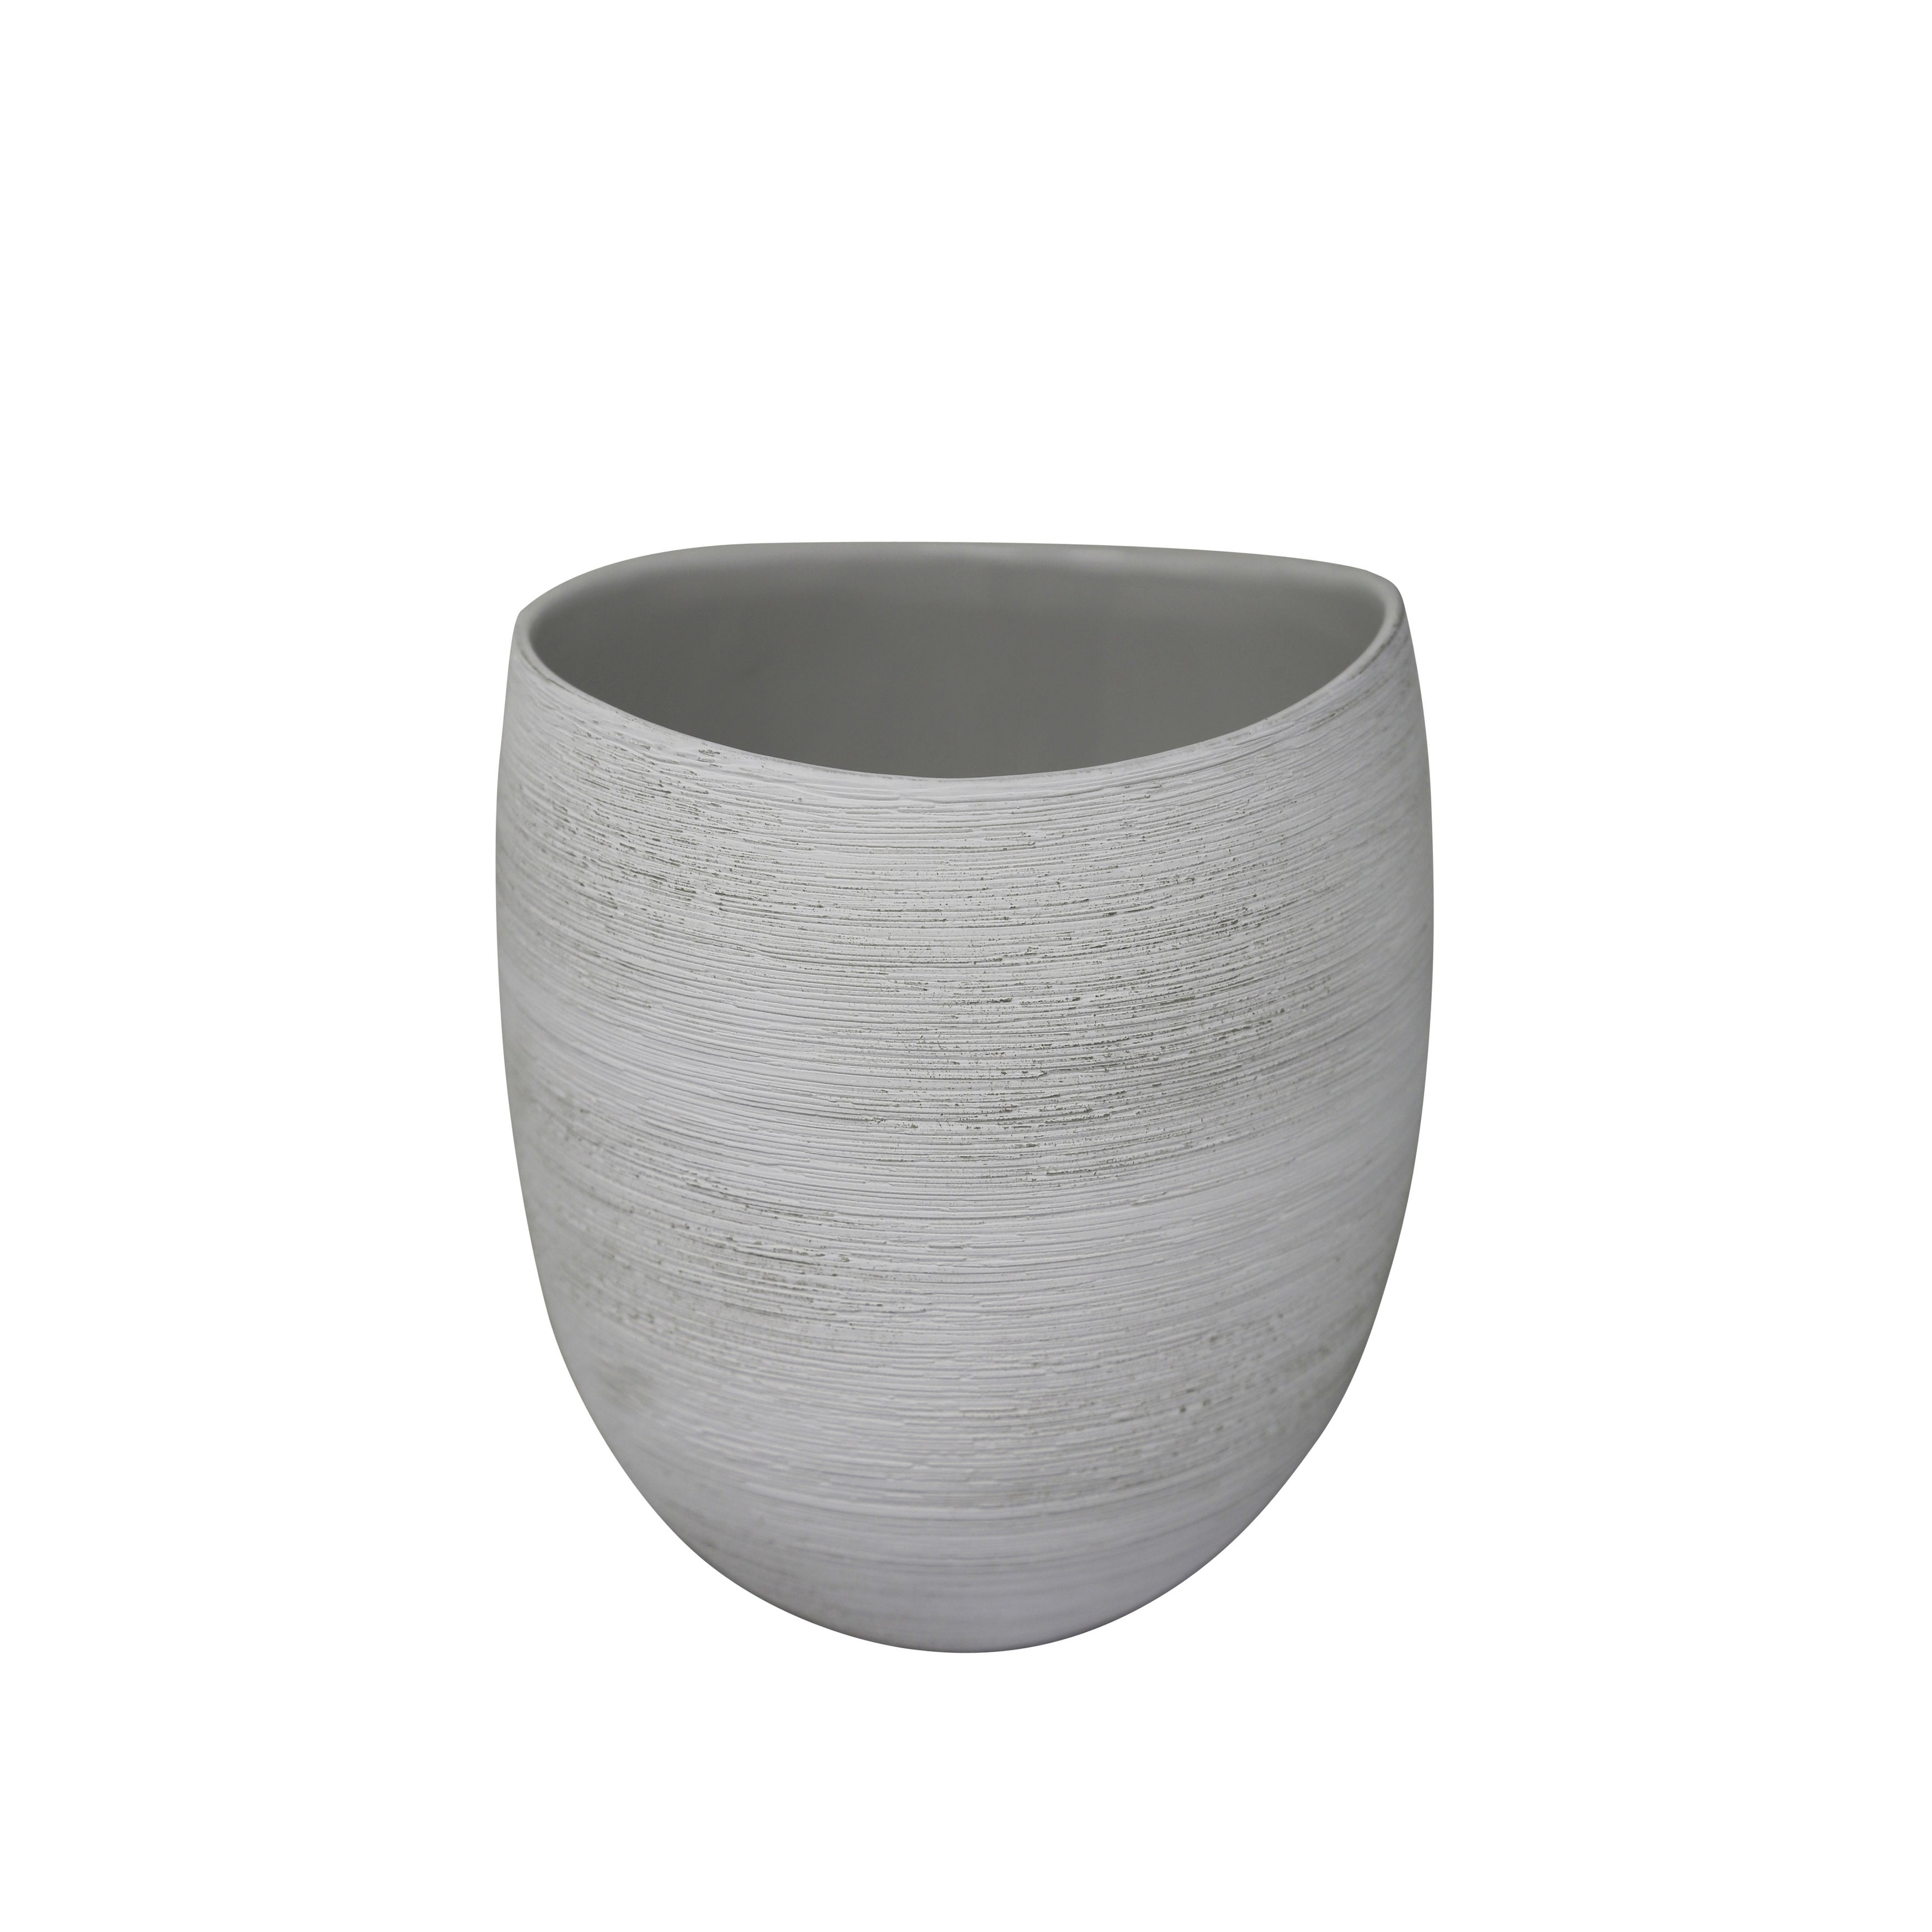 Ceramic Tapered Vase with Distressed Details, Small, White